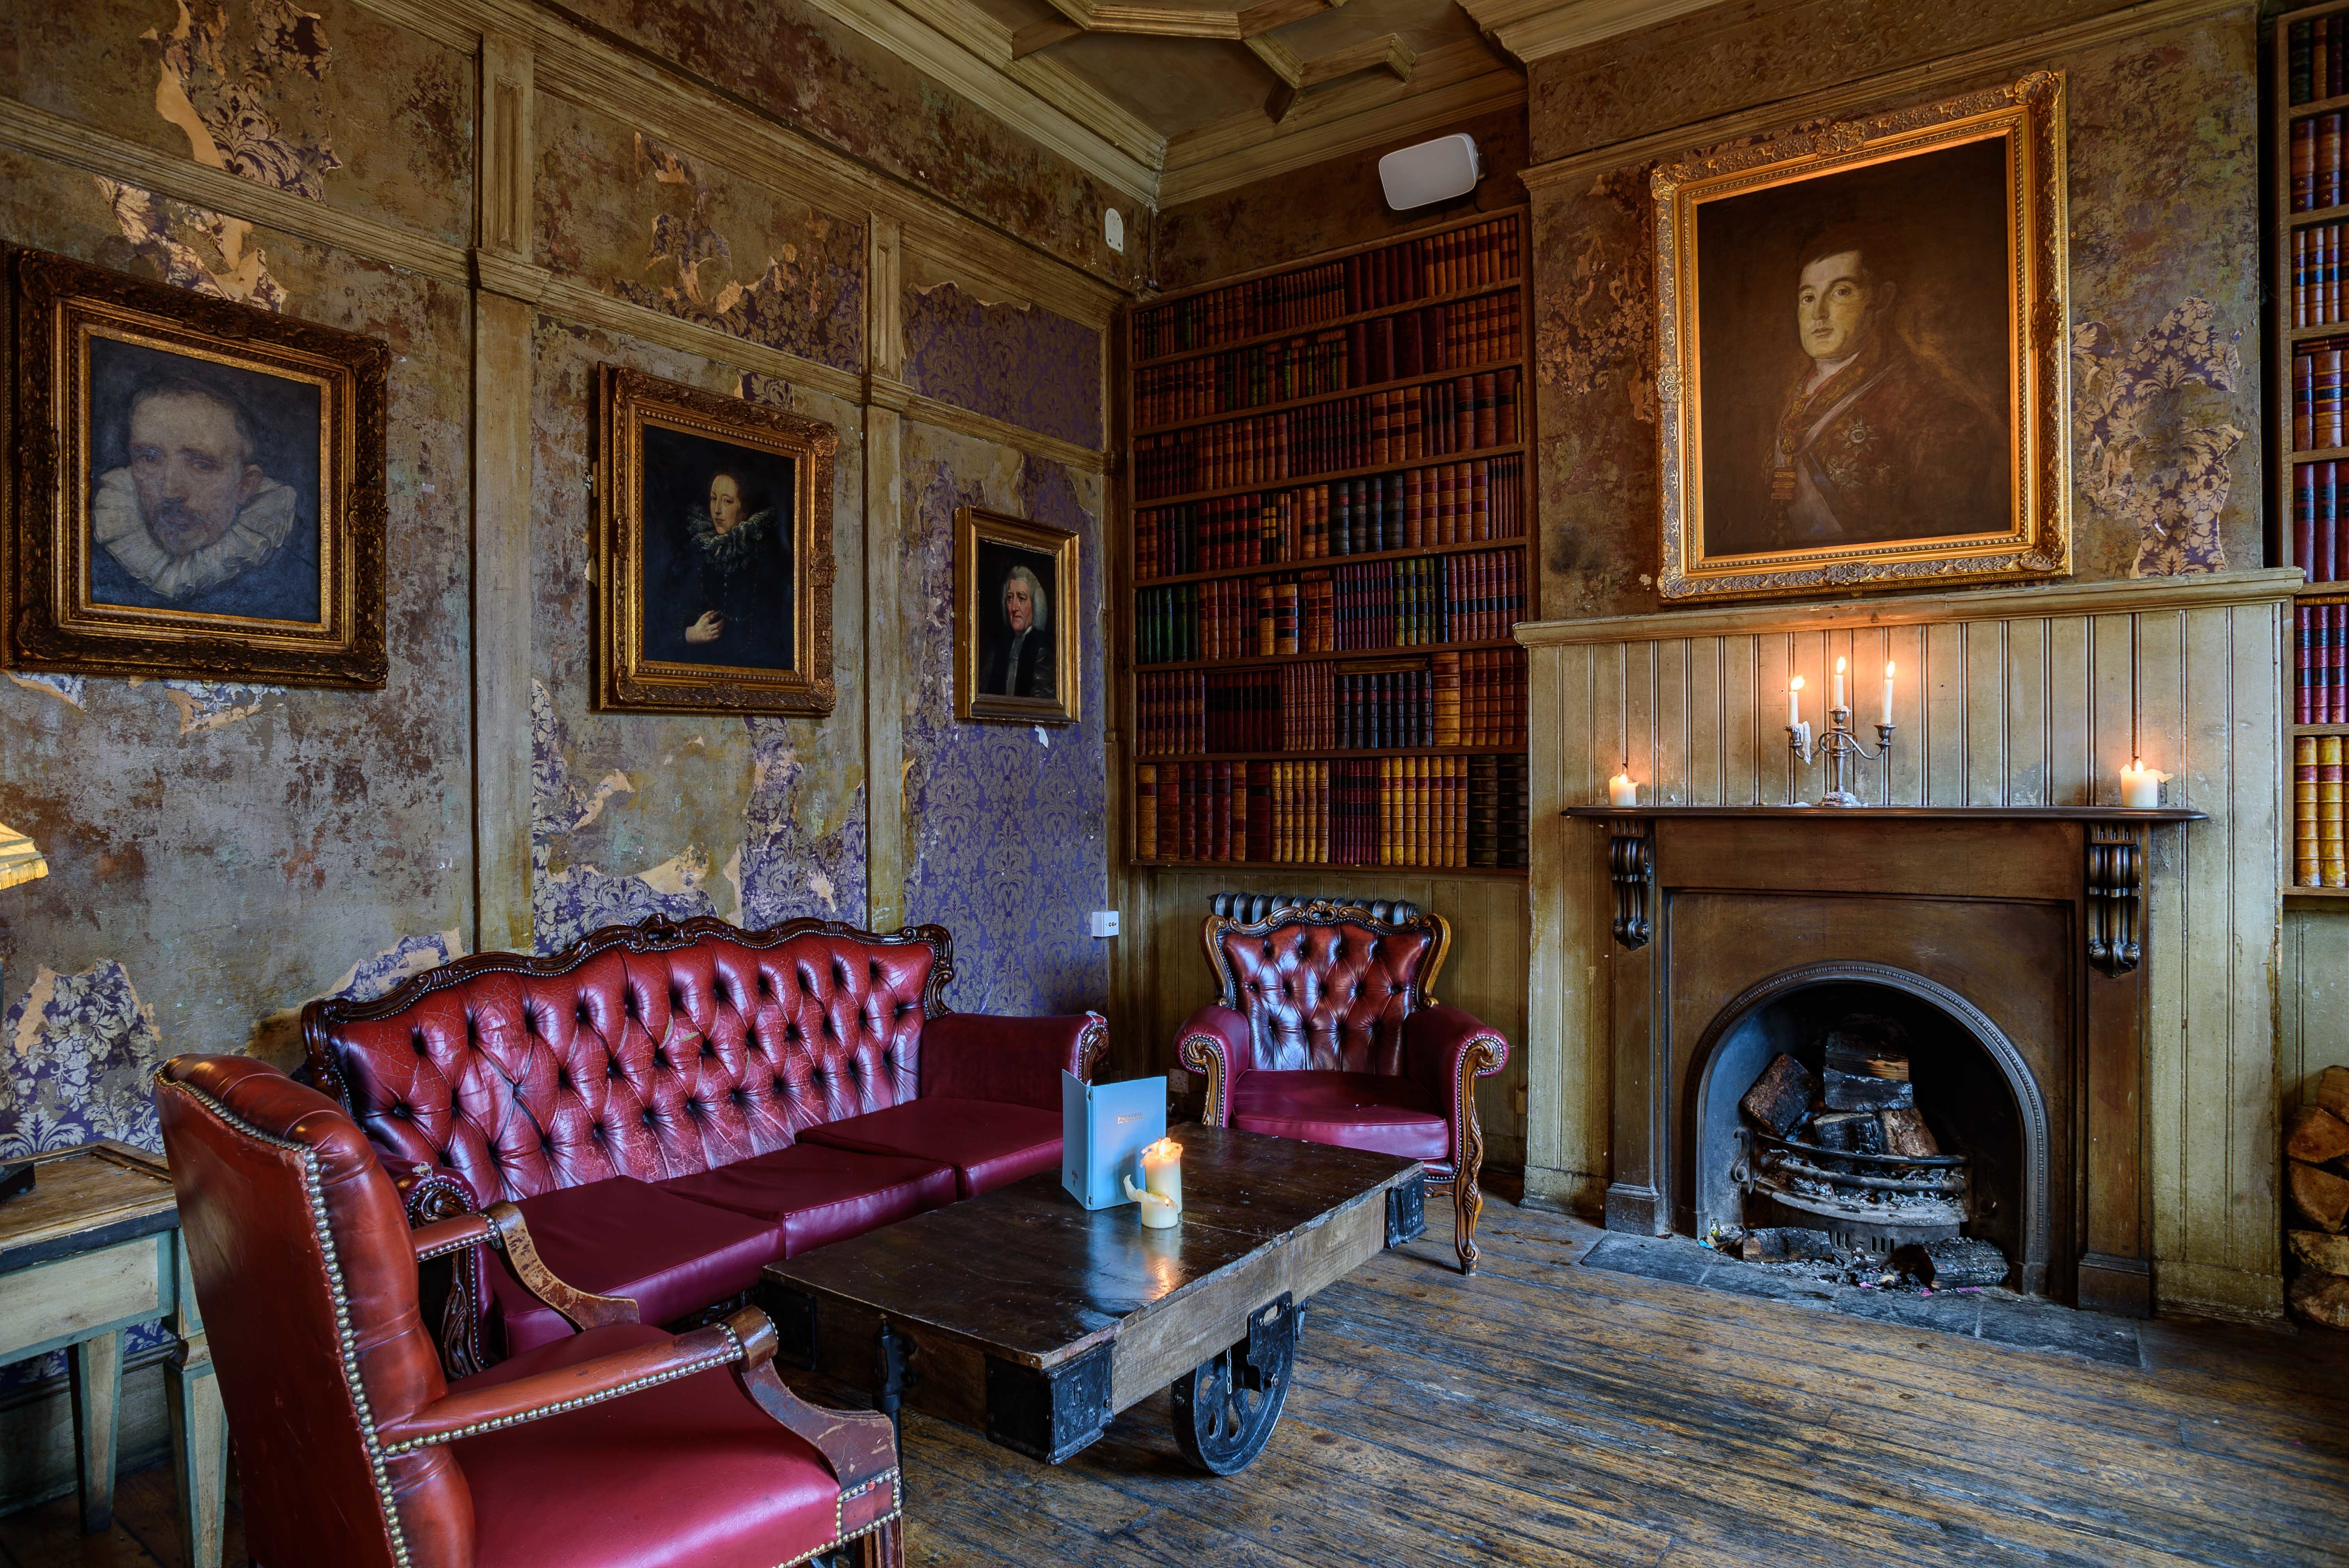 Hire Paradise by way of Kensal green Reading Room